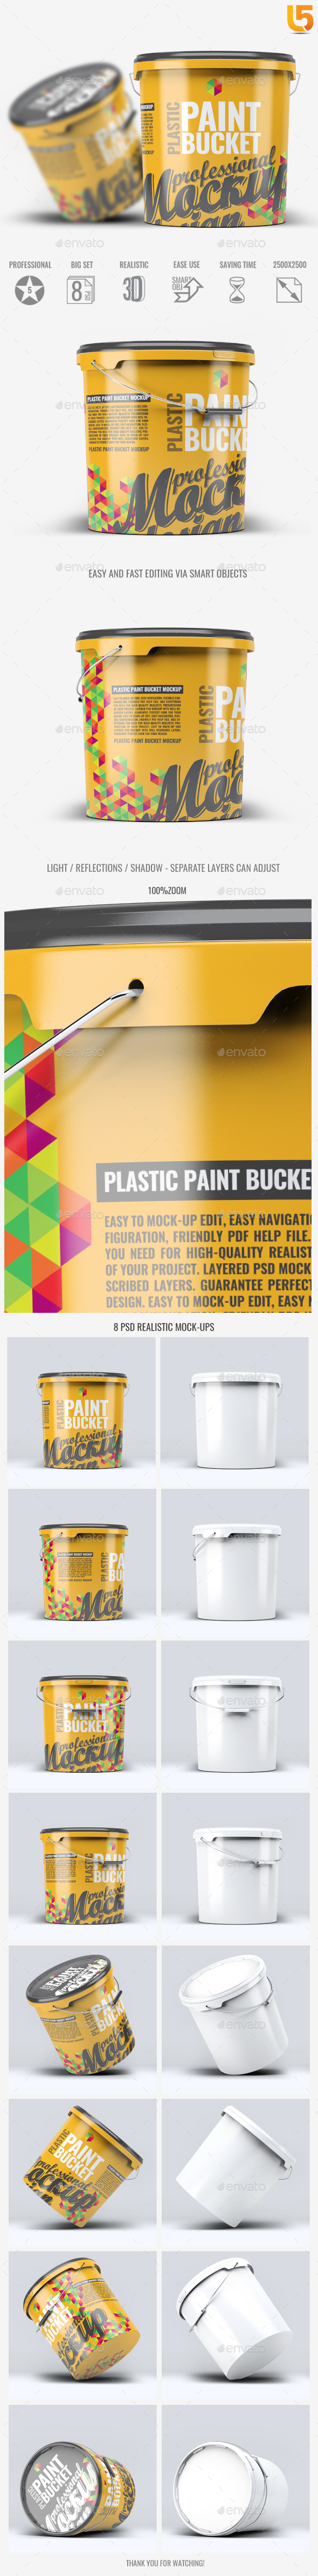 Paint Bucket Graphics Designs Templates From Graphicriver